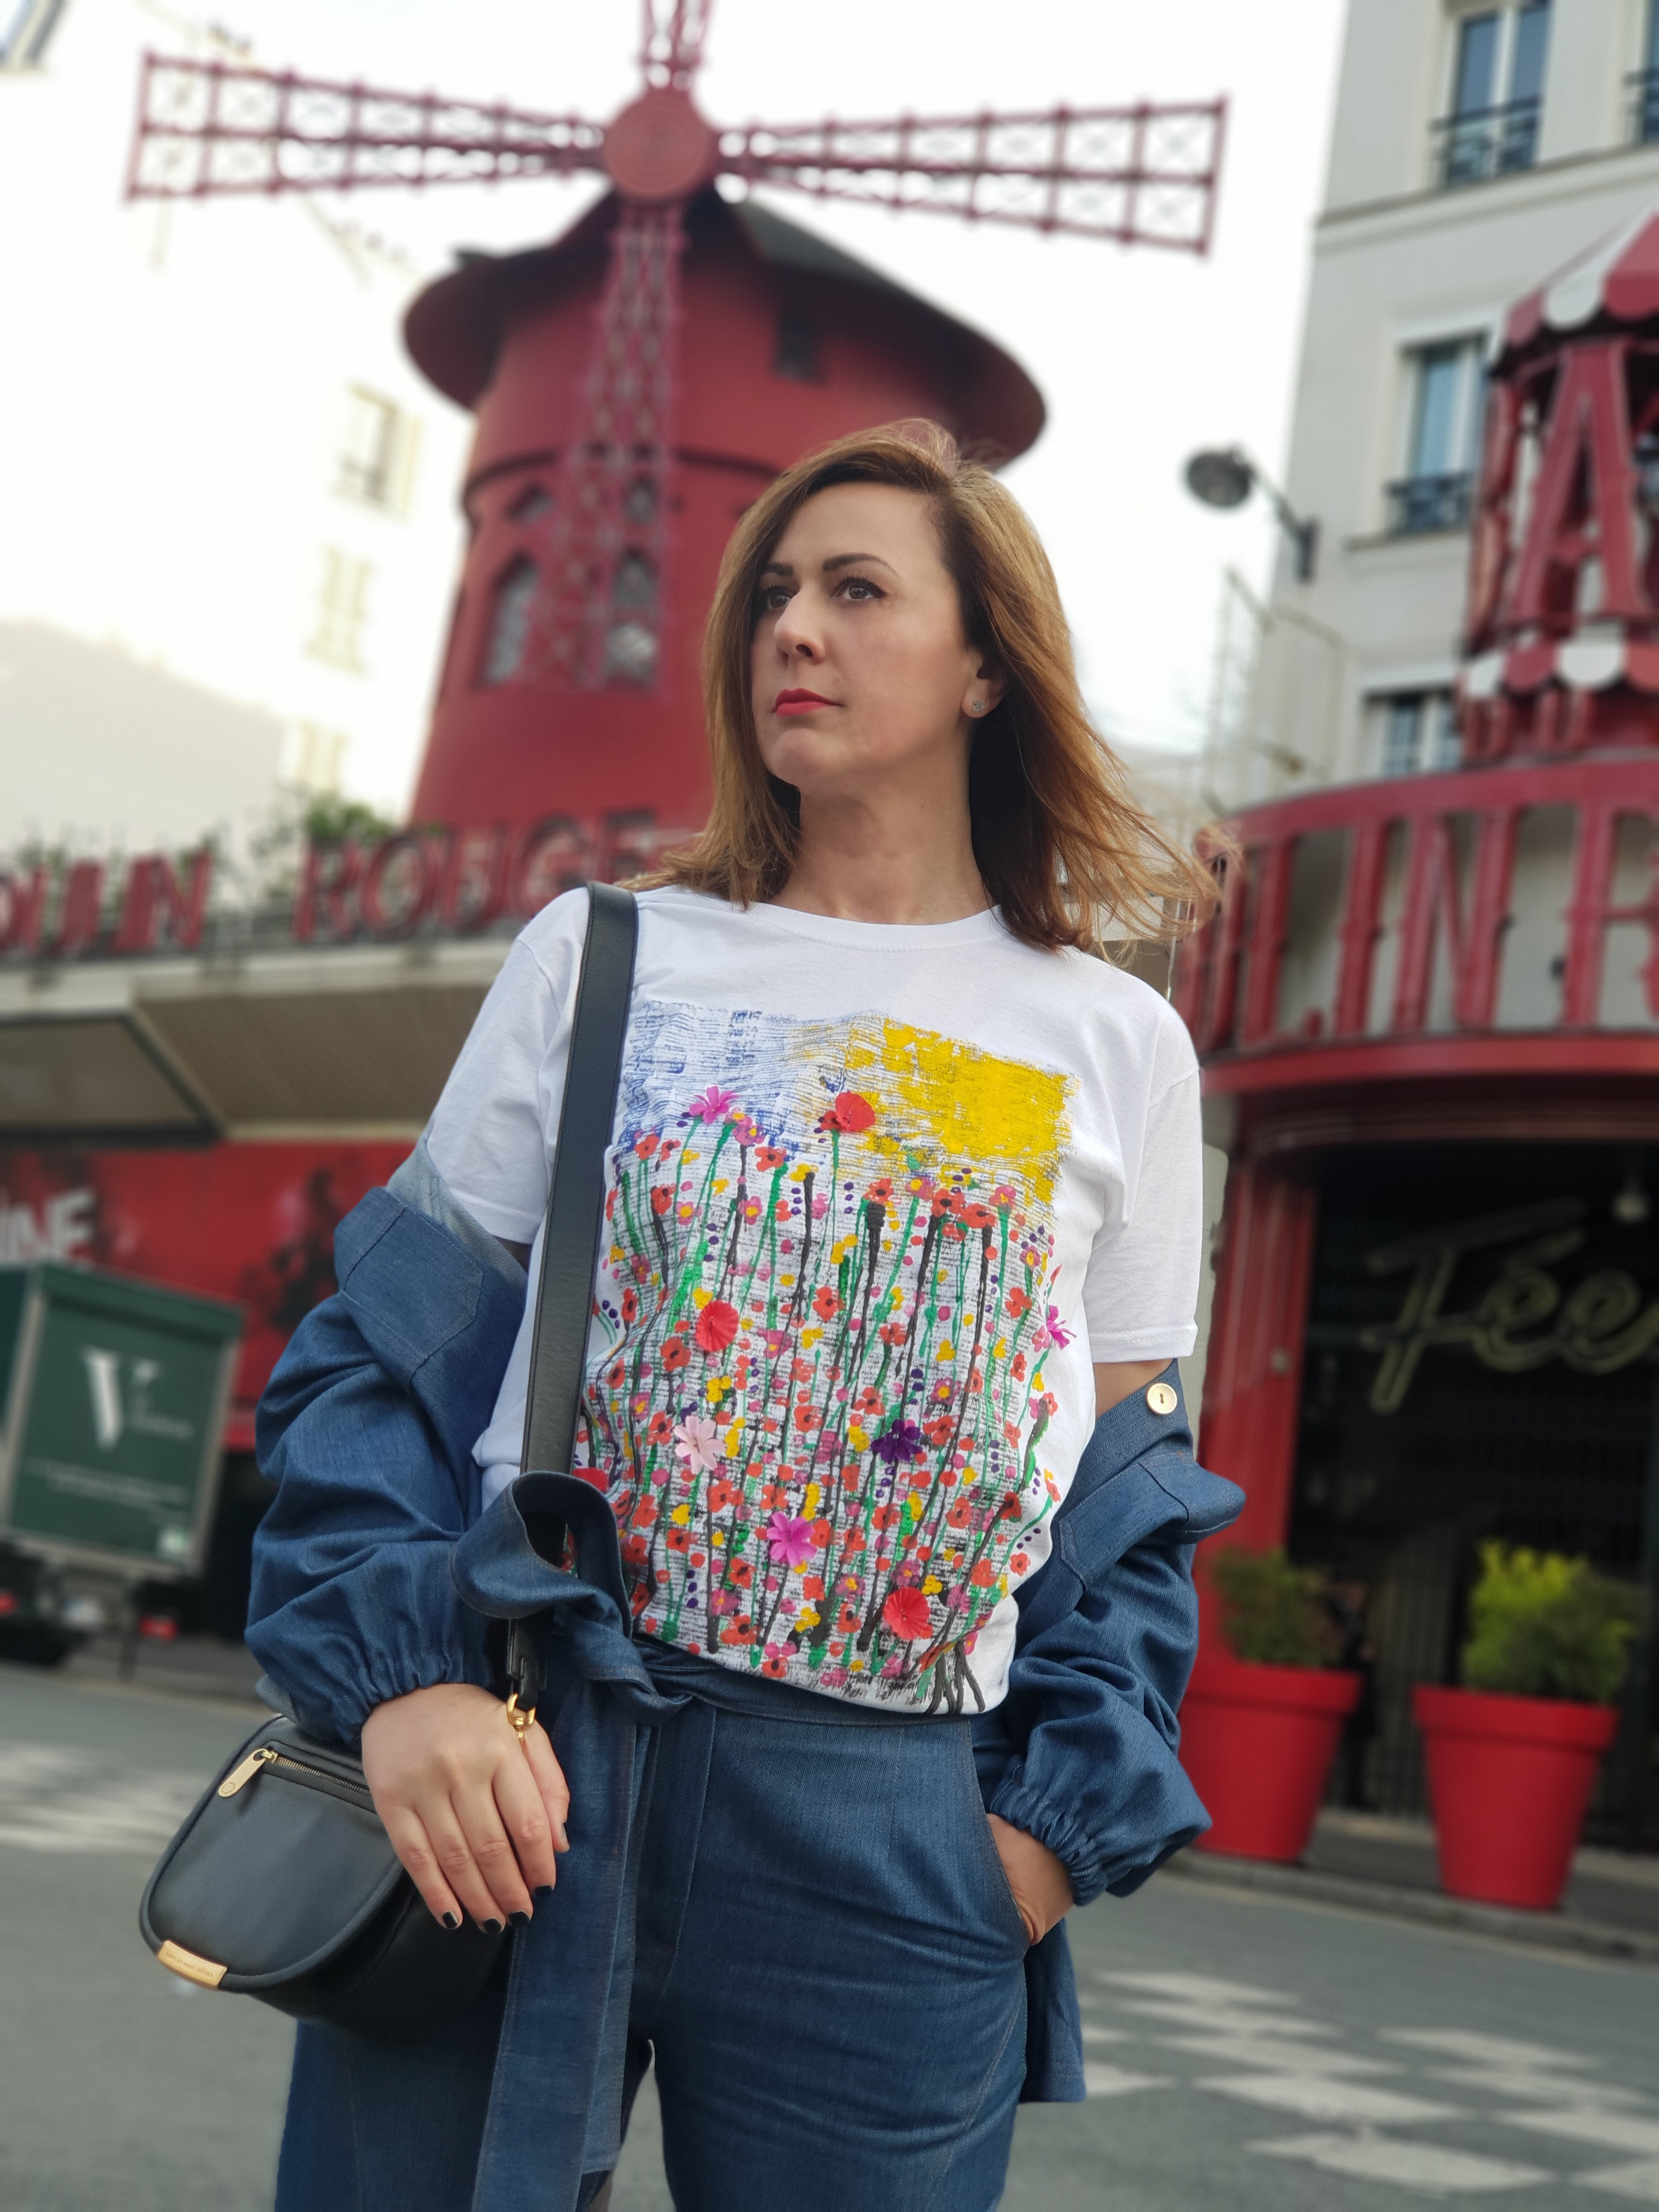 Maion hand painted T-shirt, denim jeans and jacket